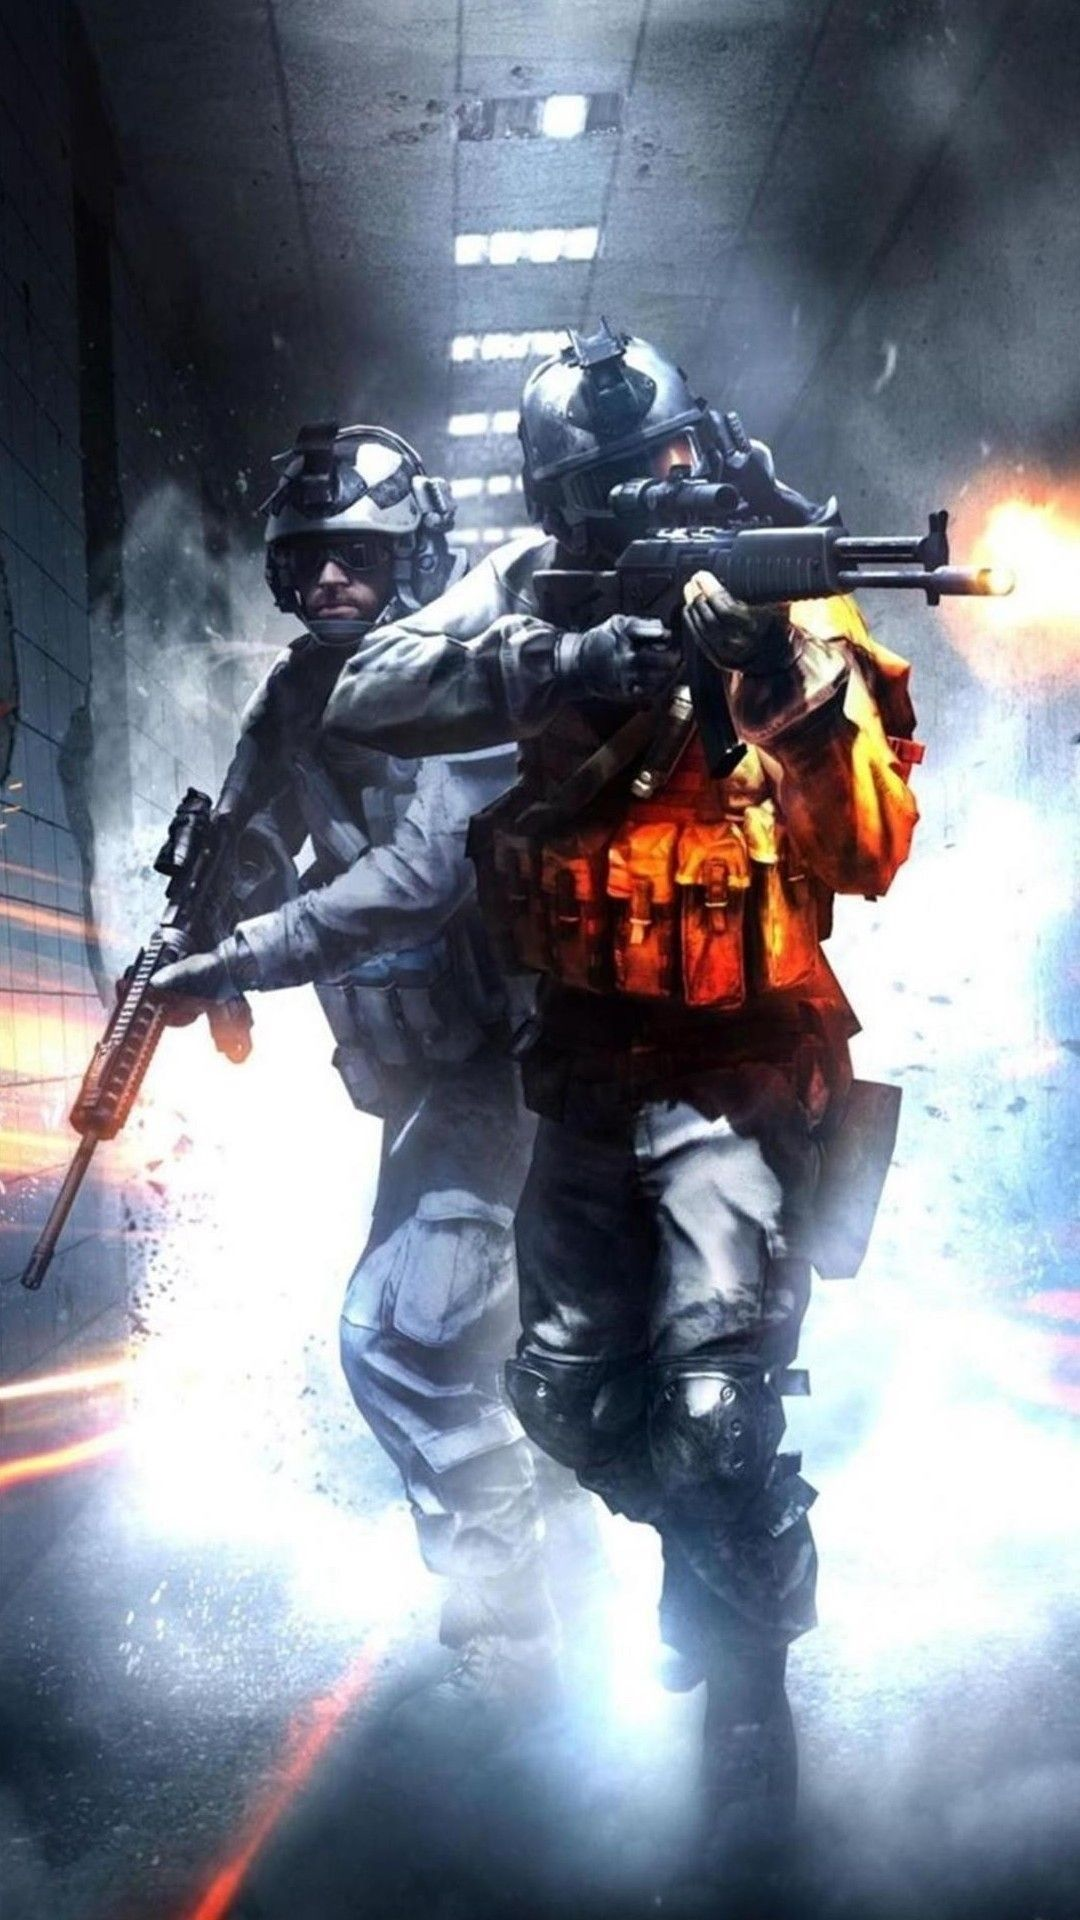 Call Of Dutty Double Team hd wallpaper in 2020 Call of